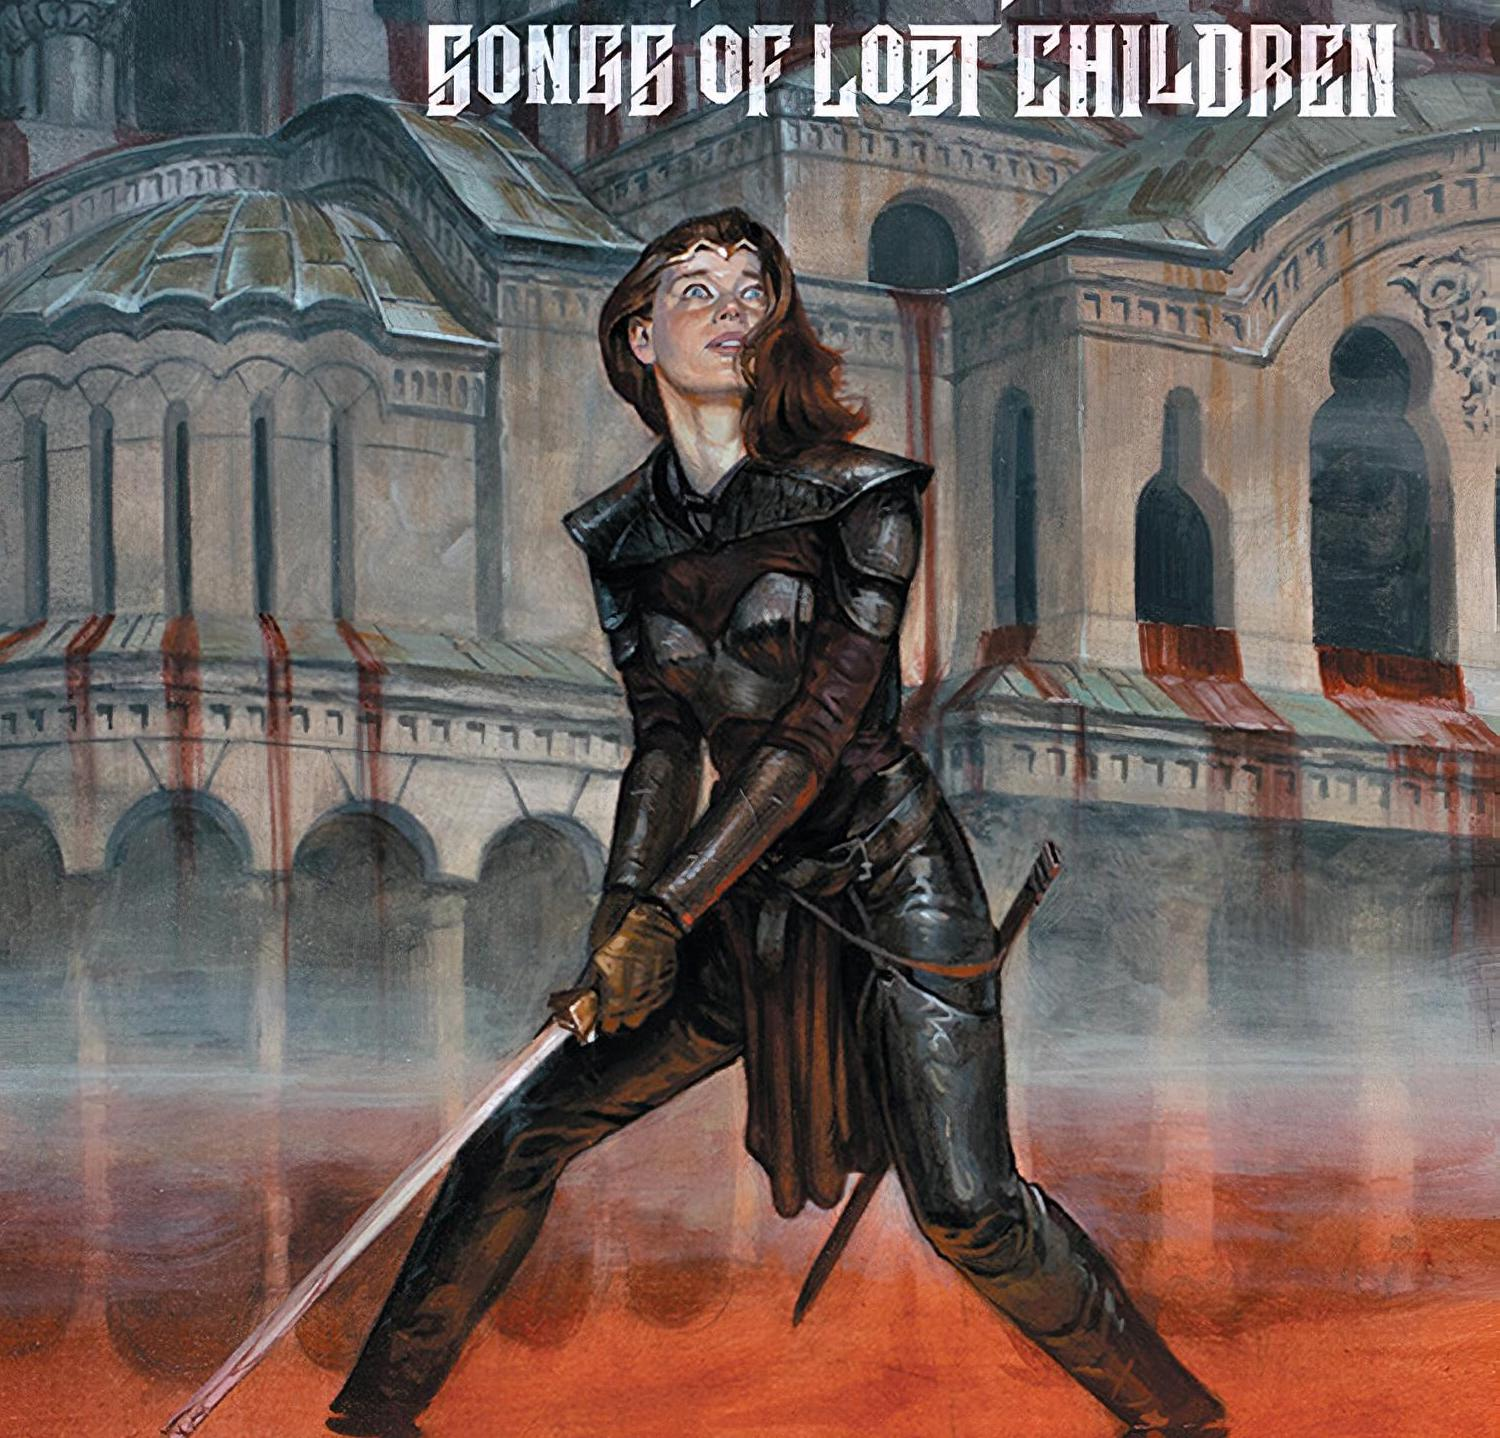 DC Comics announces 'The Last God: Songs of Lost Children' from Dan Watters and Steve Beach out 9/22/20